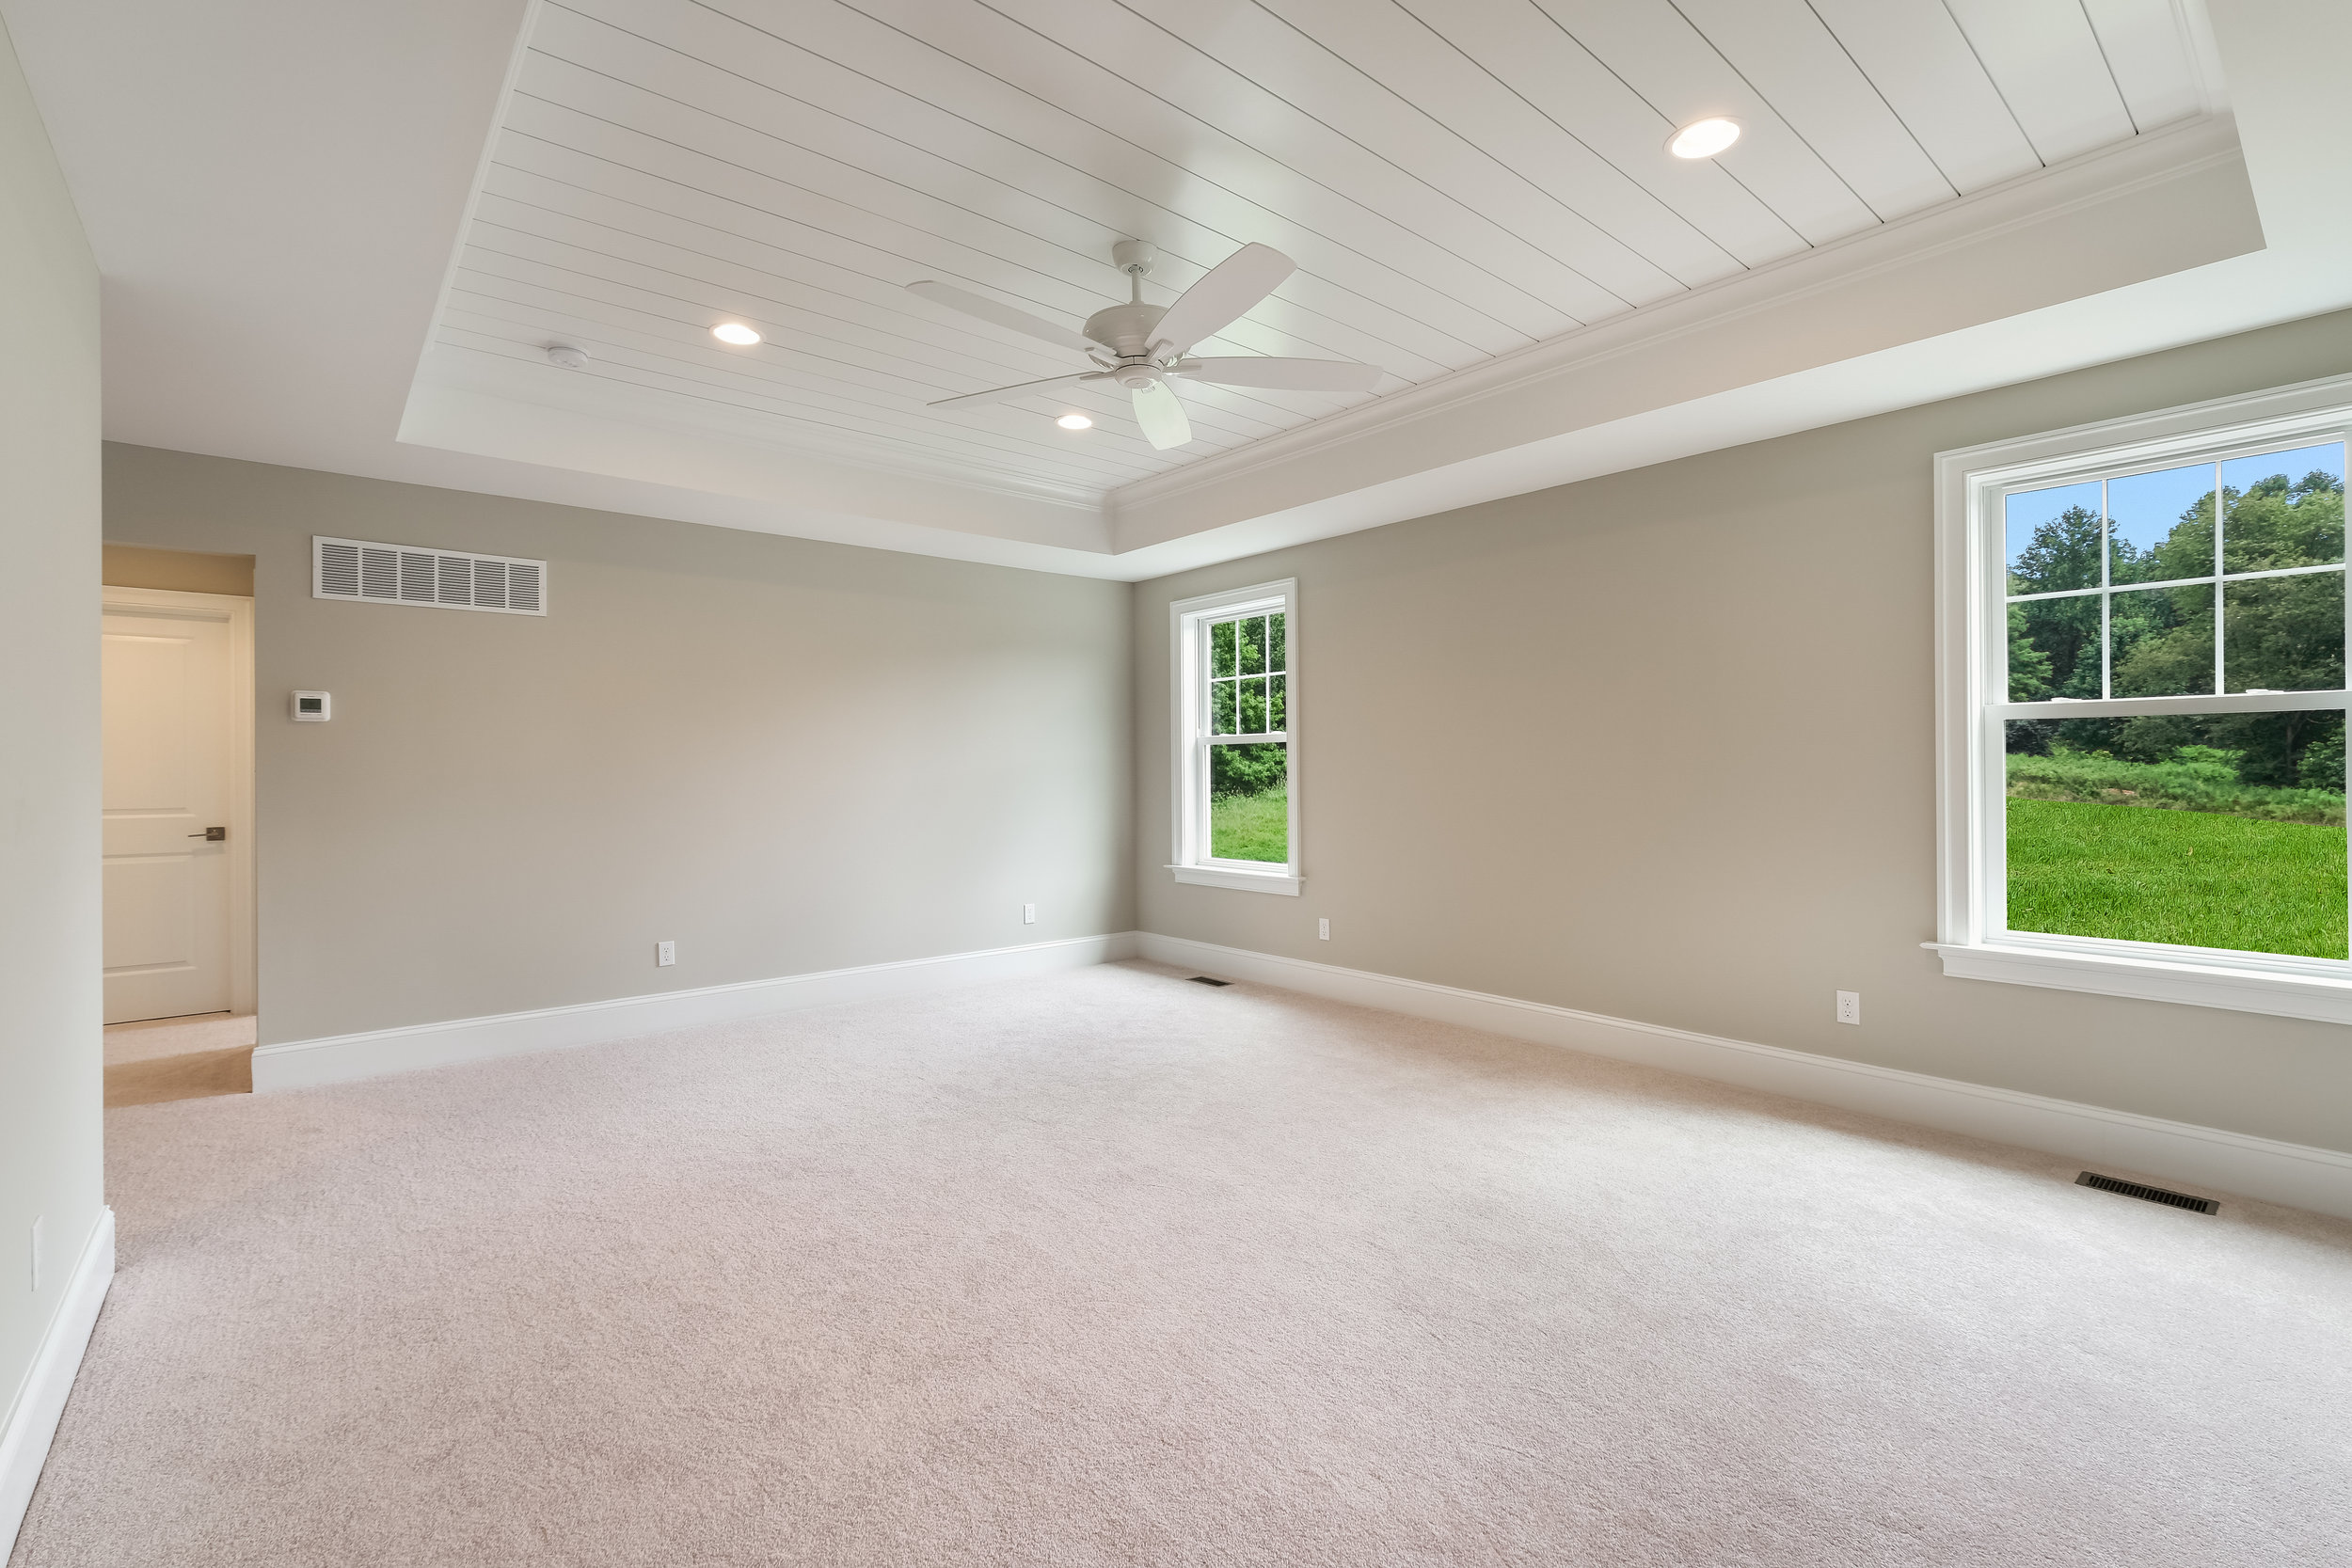 Breathtaking Master Retreat with Shiplap Tray Ceiling, En Suite 4-Piece Bath, and Extravagant Walk-In Closet